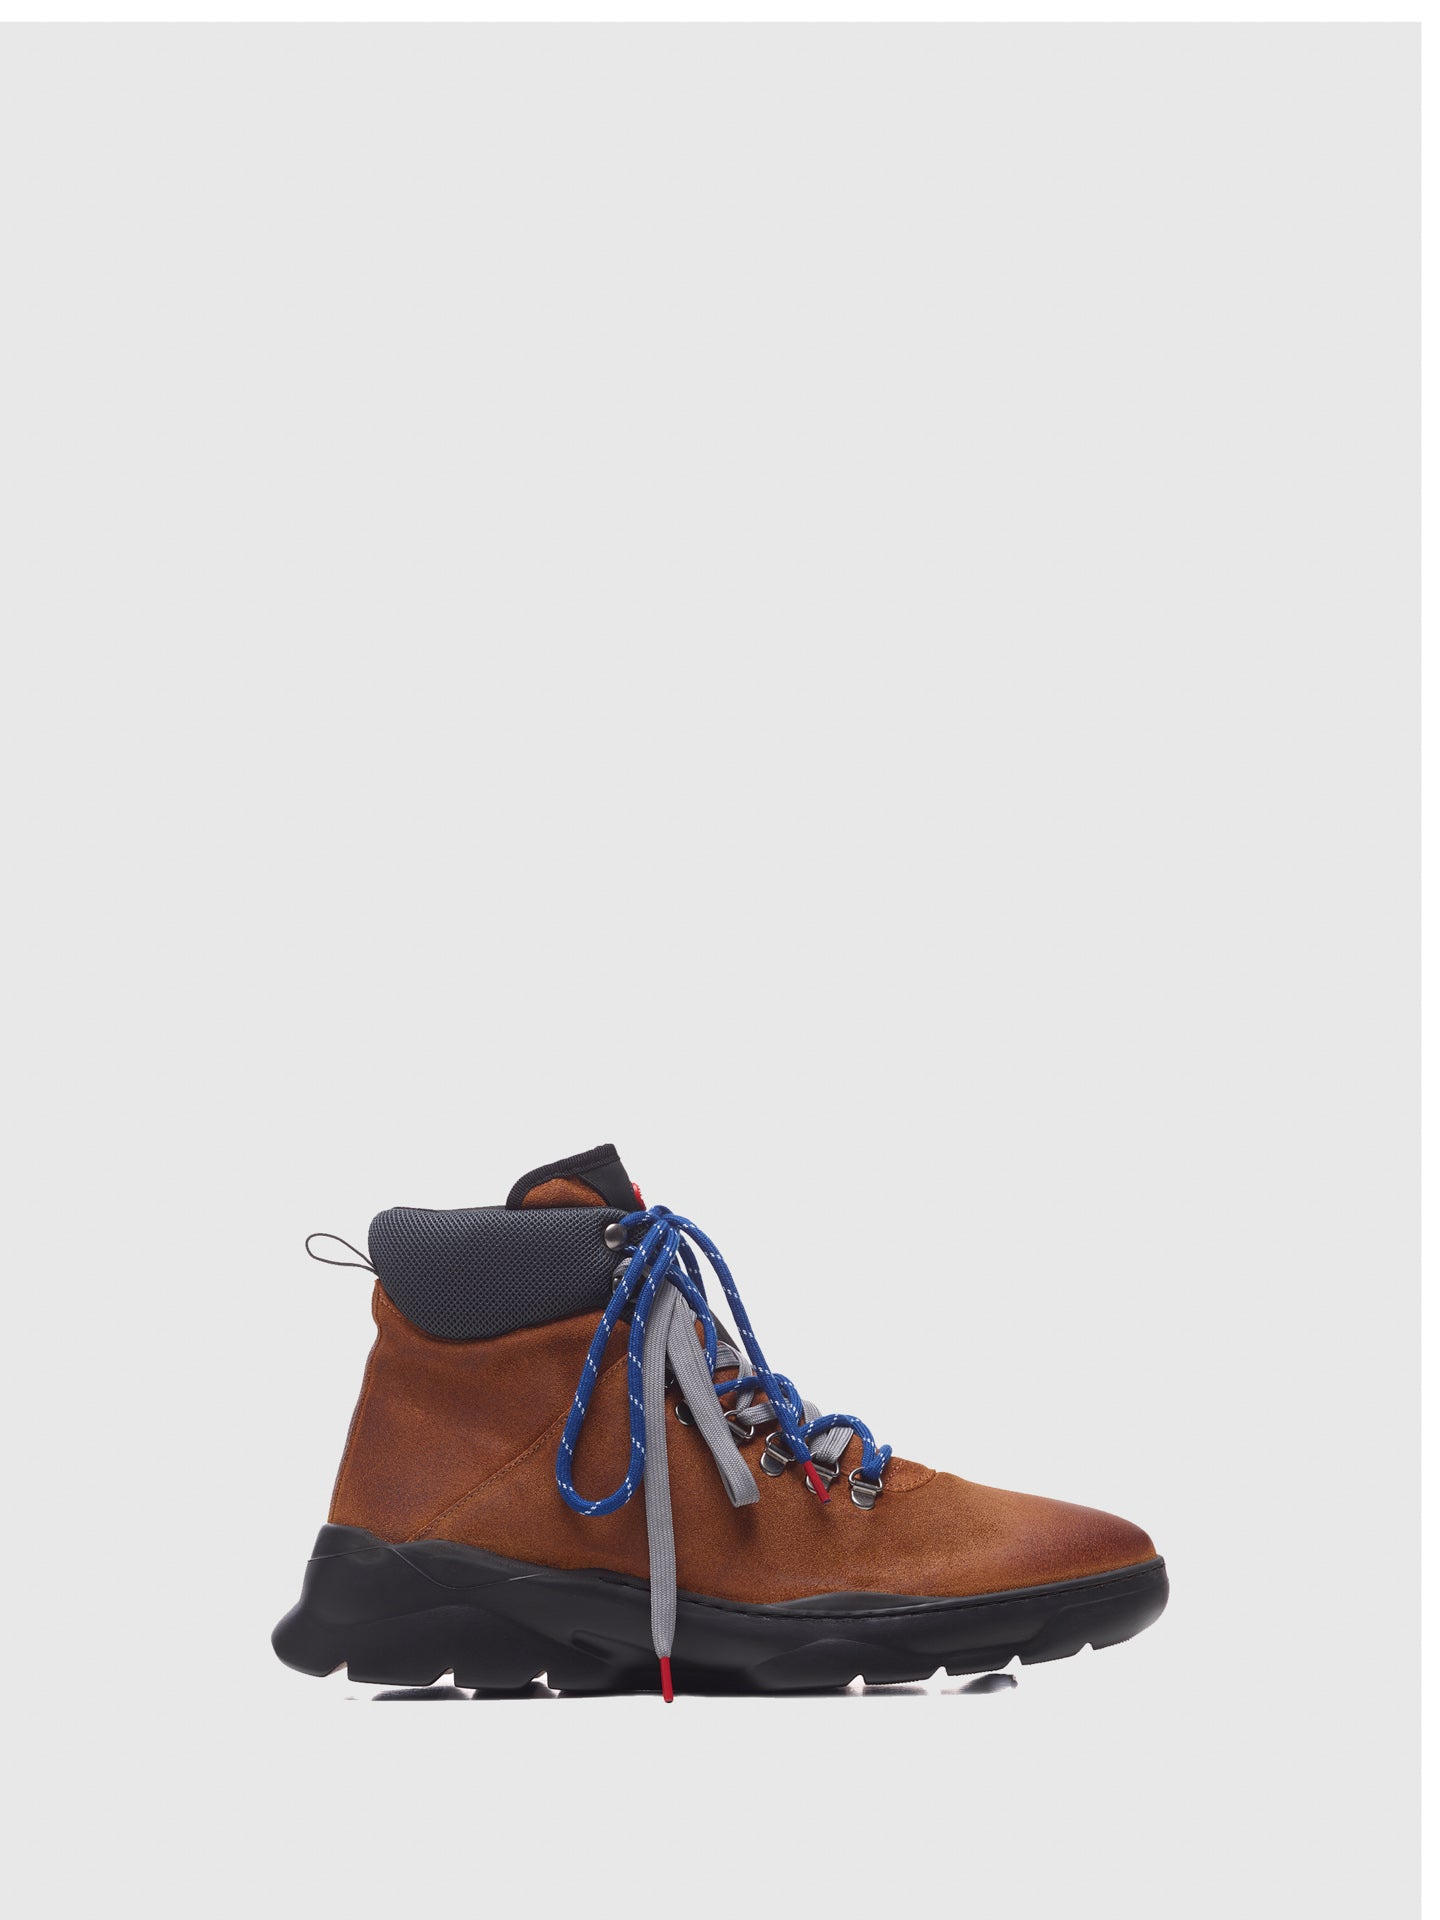 Nobrand Tan Lace-up Boots